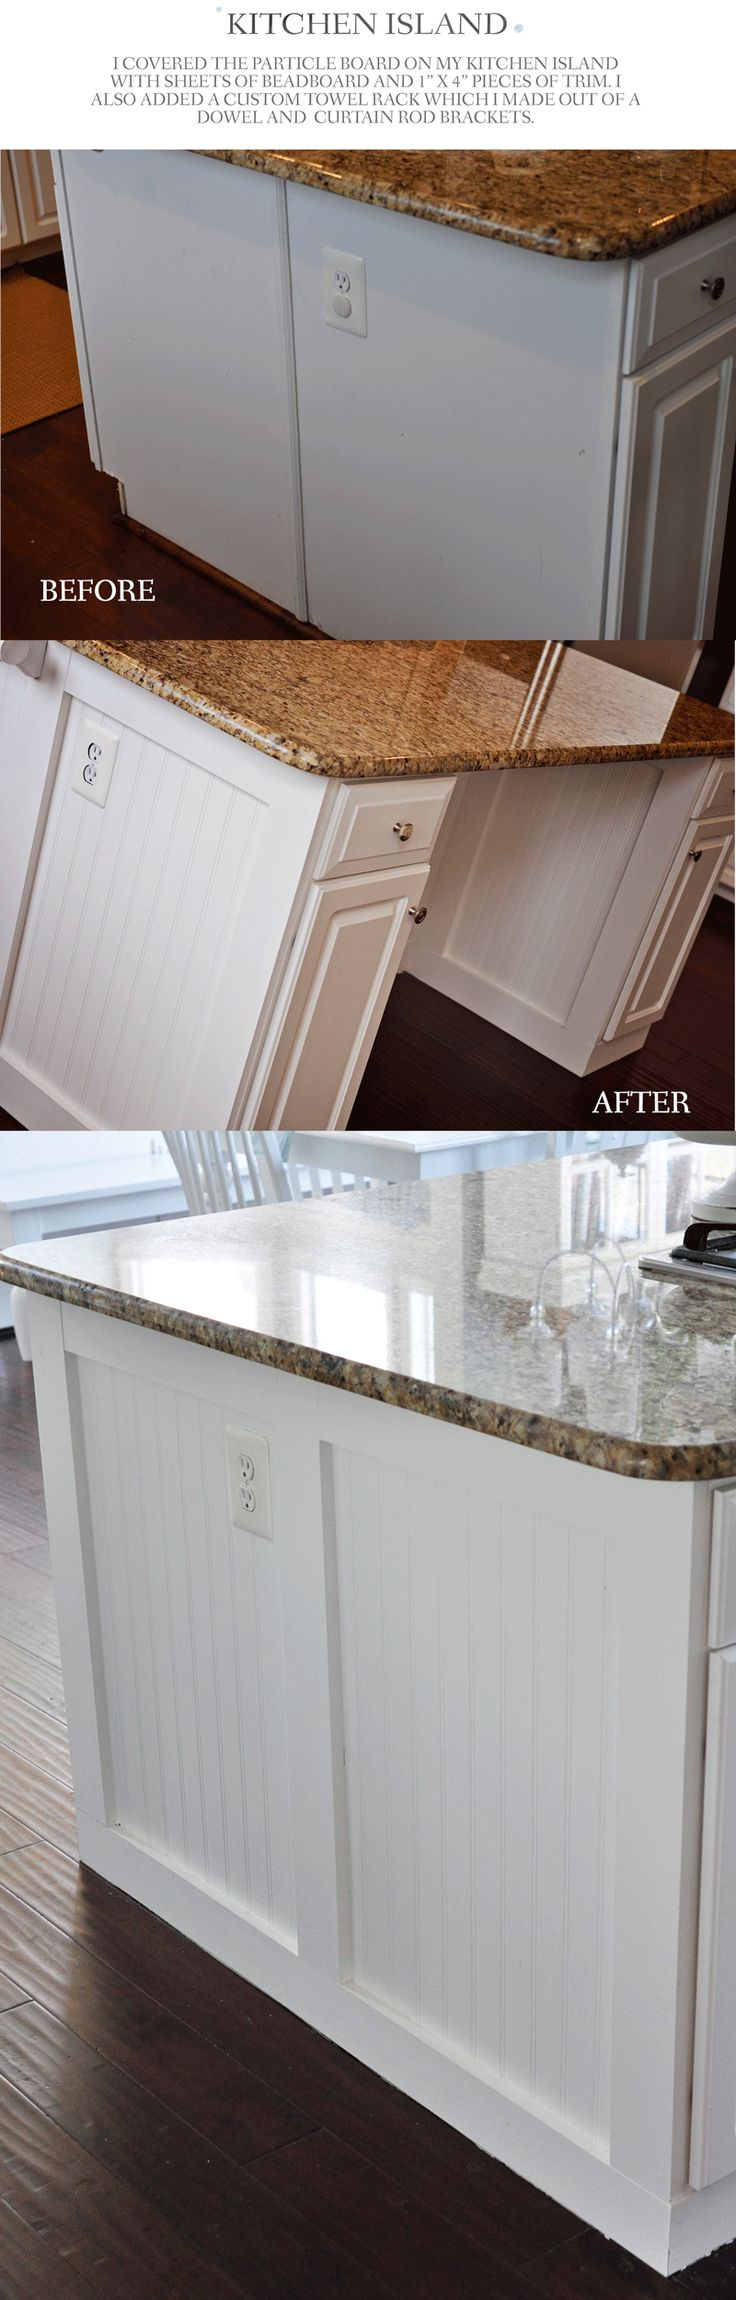 Update Cabinets With Beadboard And Trim Cheap And Easy Way To Update Your Kitchen